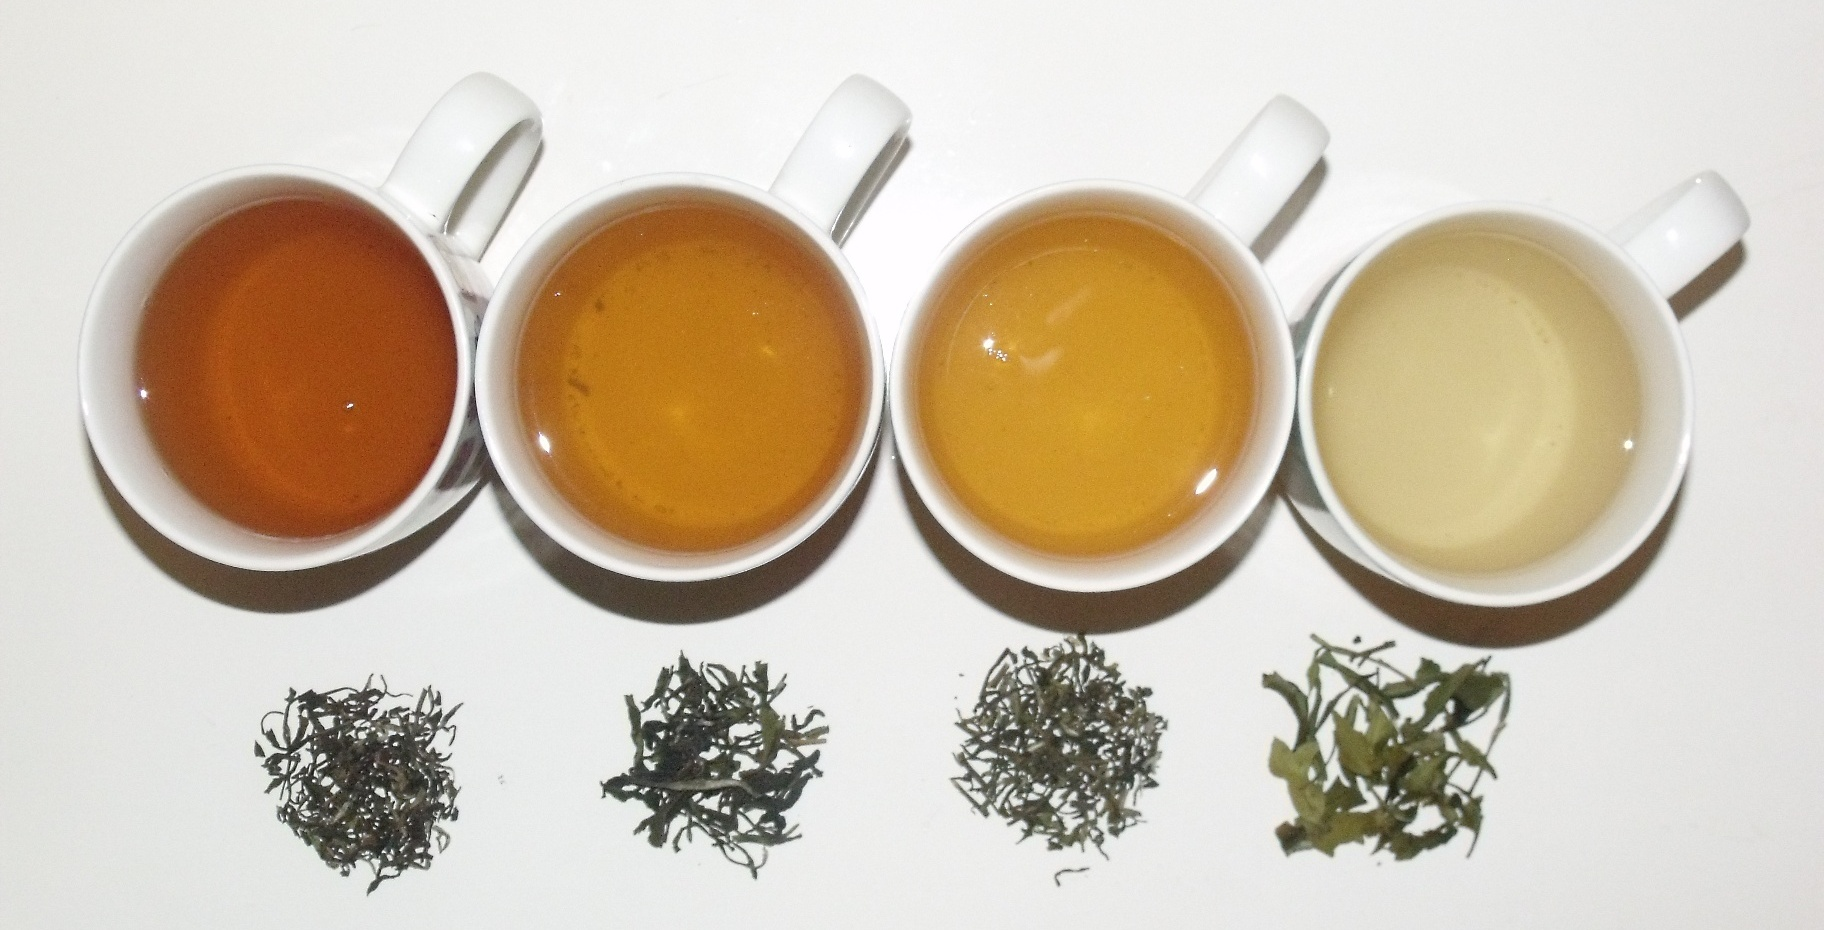 Different teas in cups